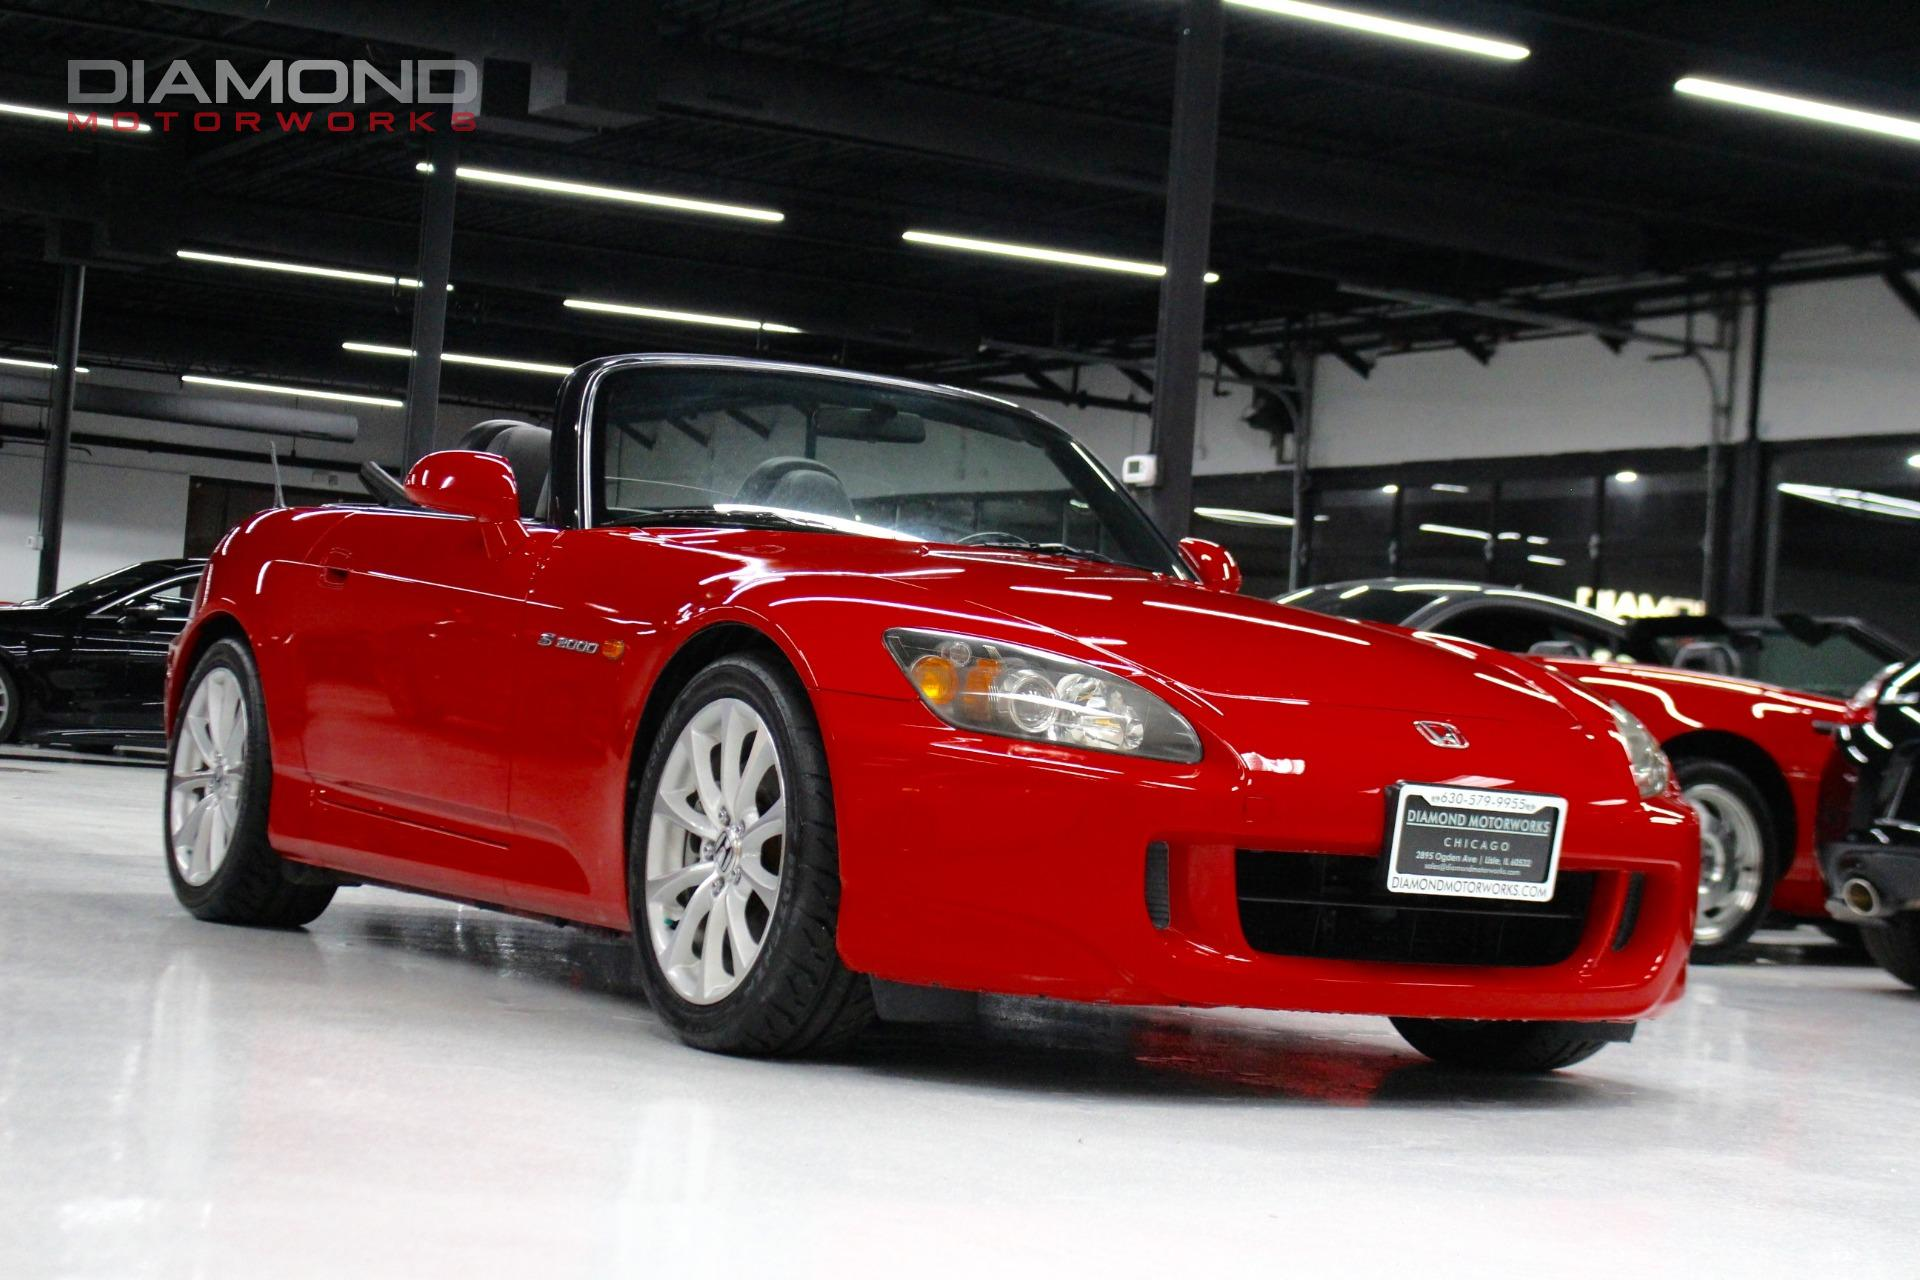 2007 honda s2000 2dr convertible stock 004410 for sale near lisle il il honda dealer. Black Bedroom Furniture Sets. Home Design Ideas